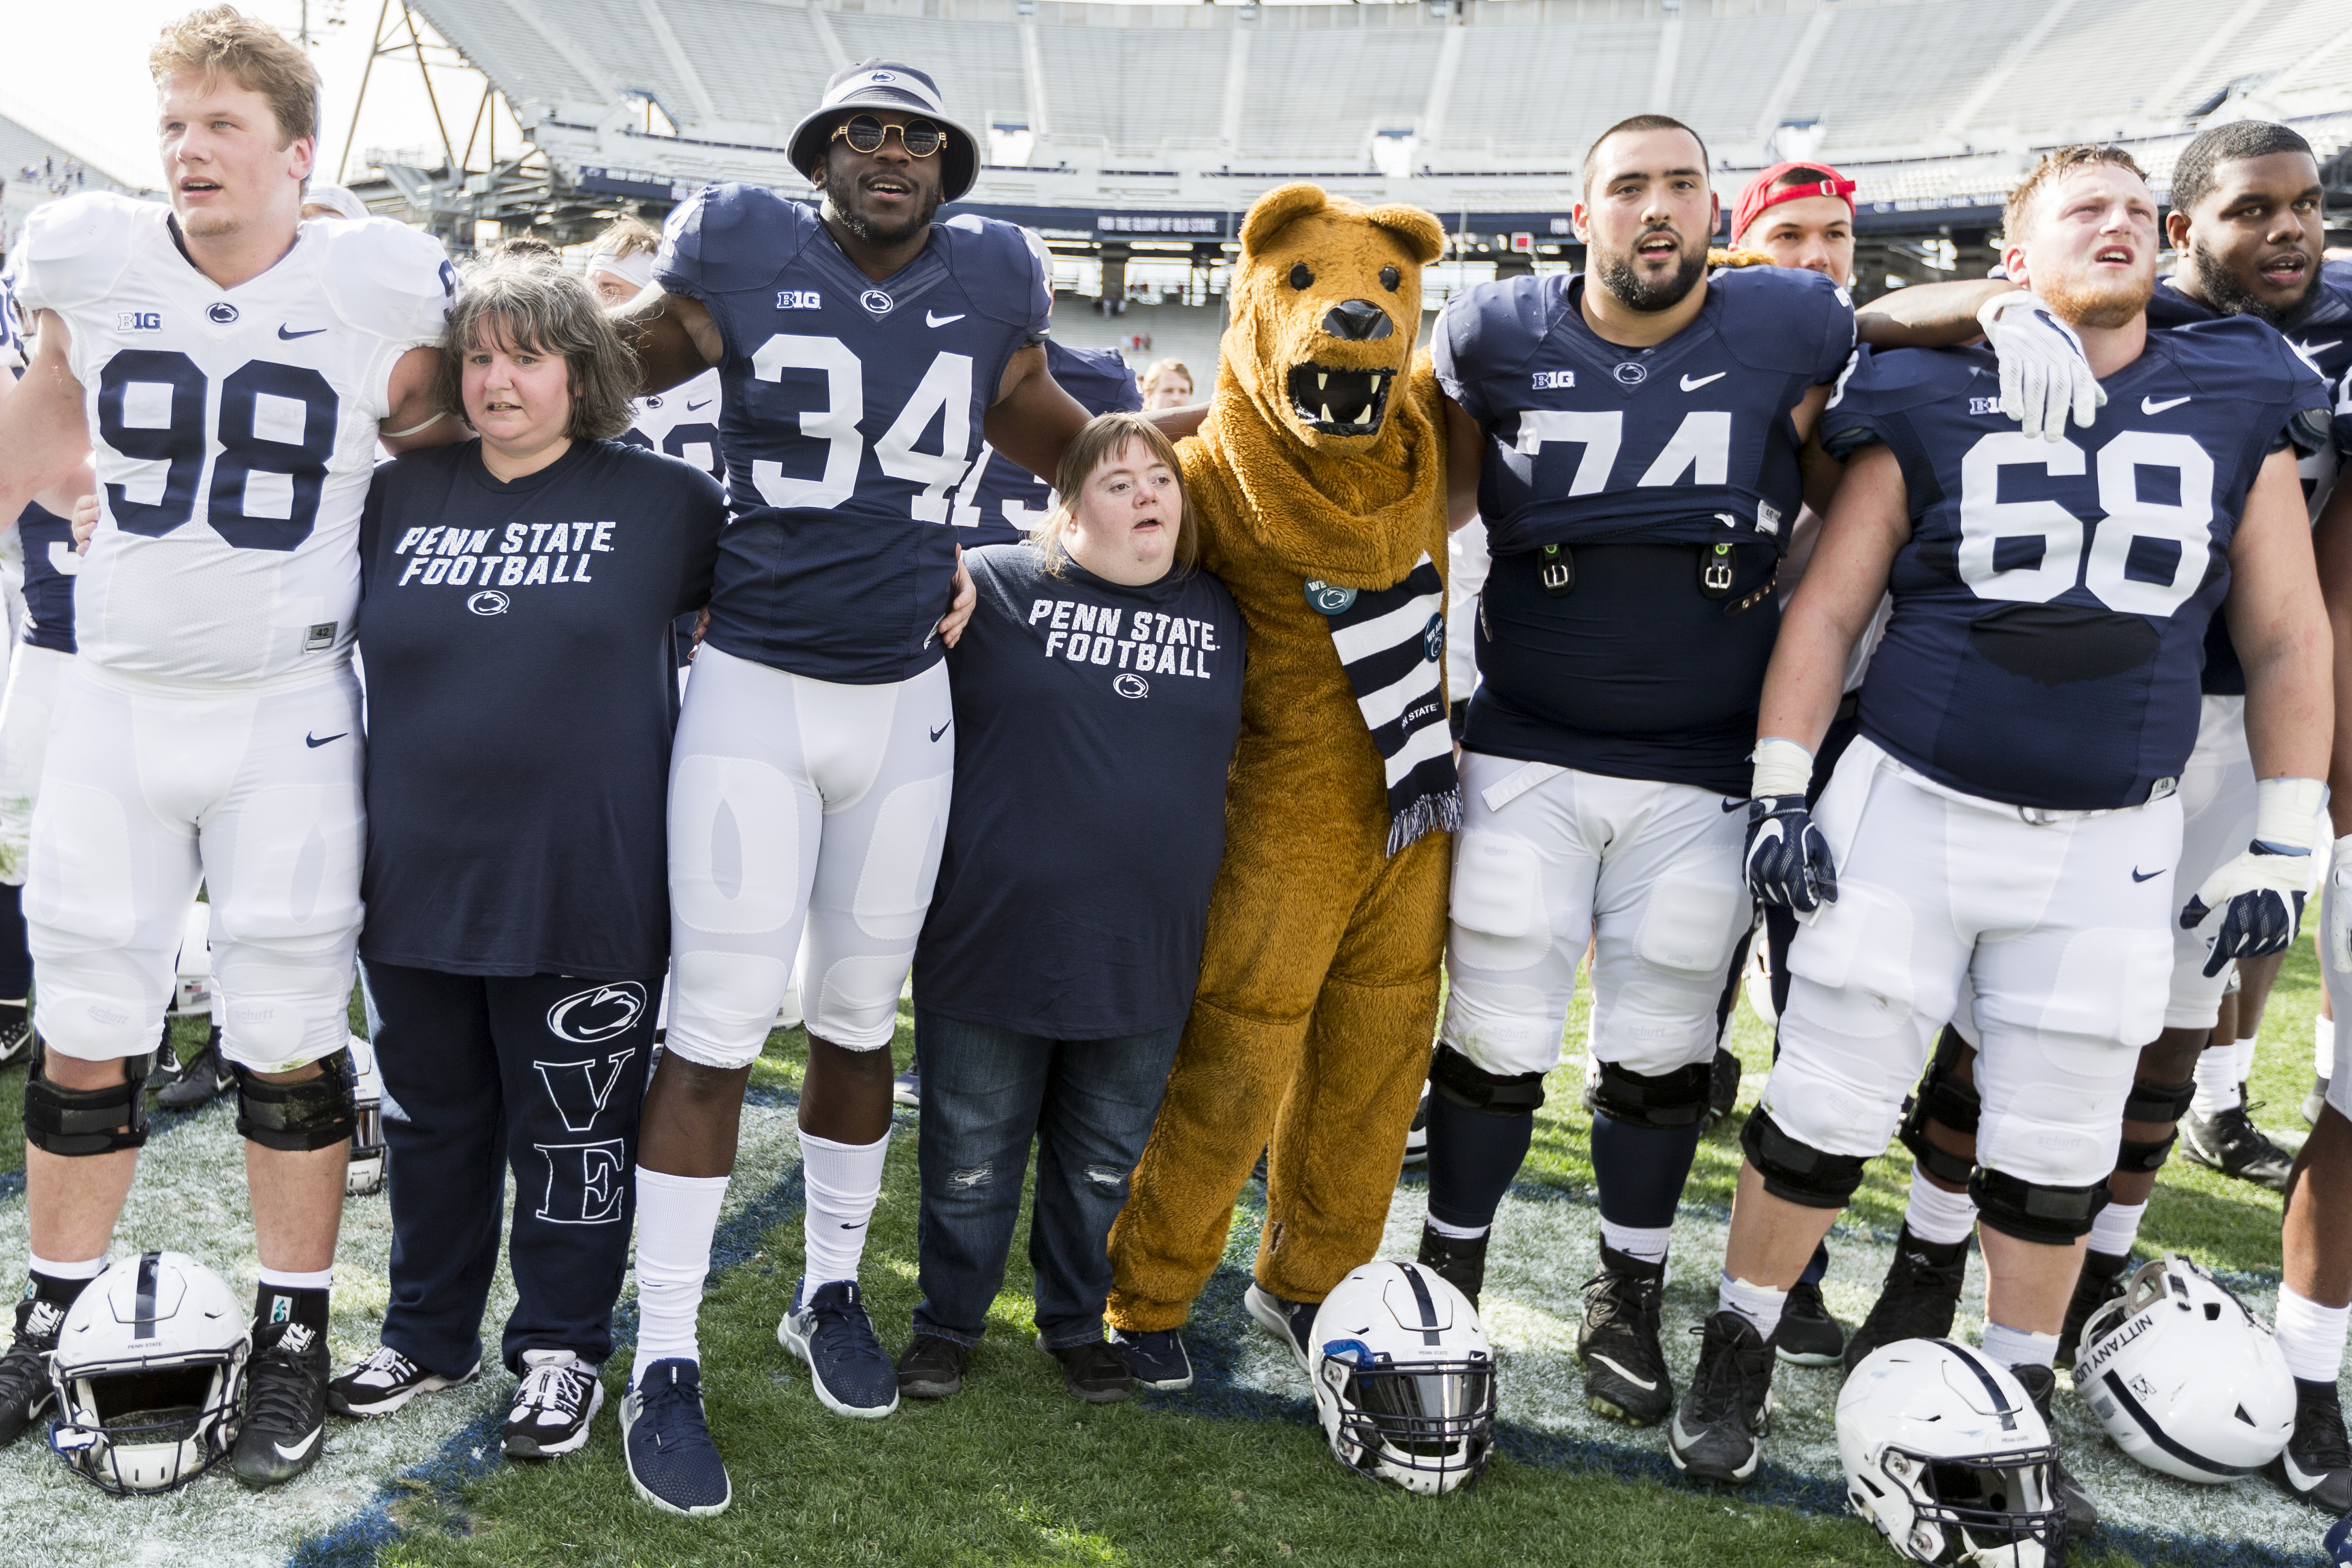 Penn State Football Student Season Ticket Sales 2019 Mobile Only